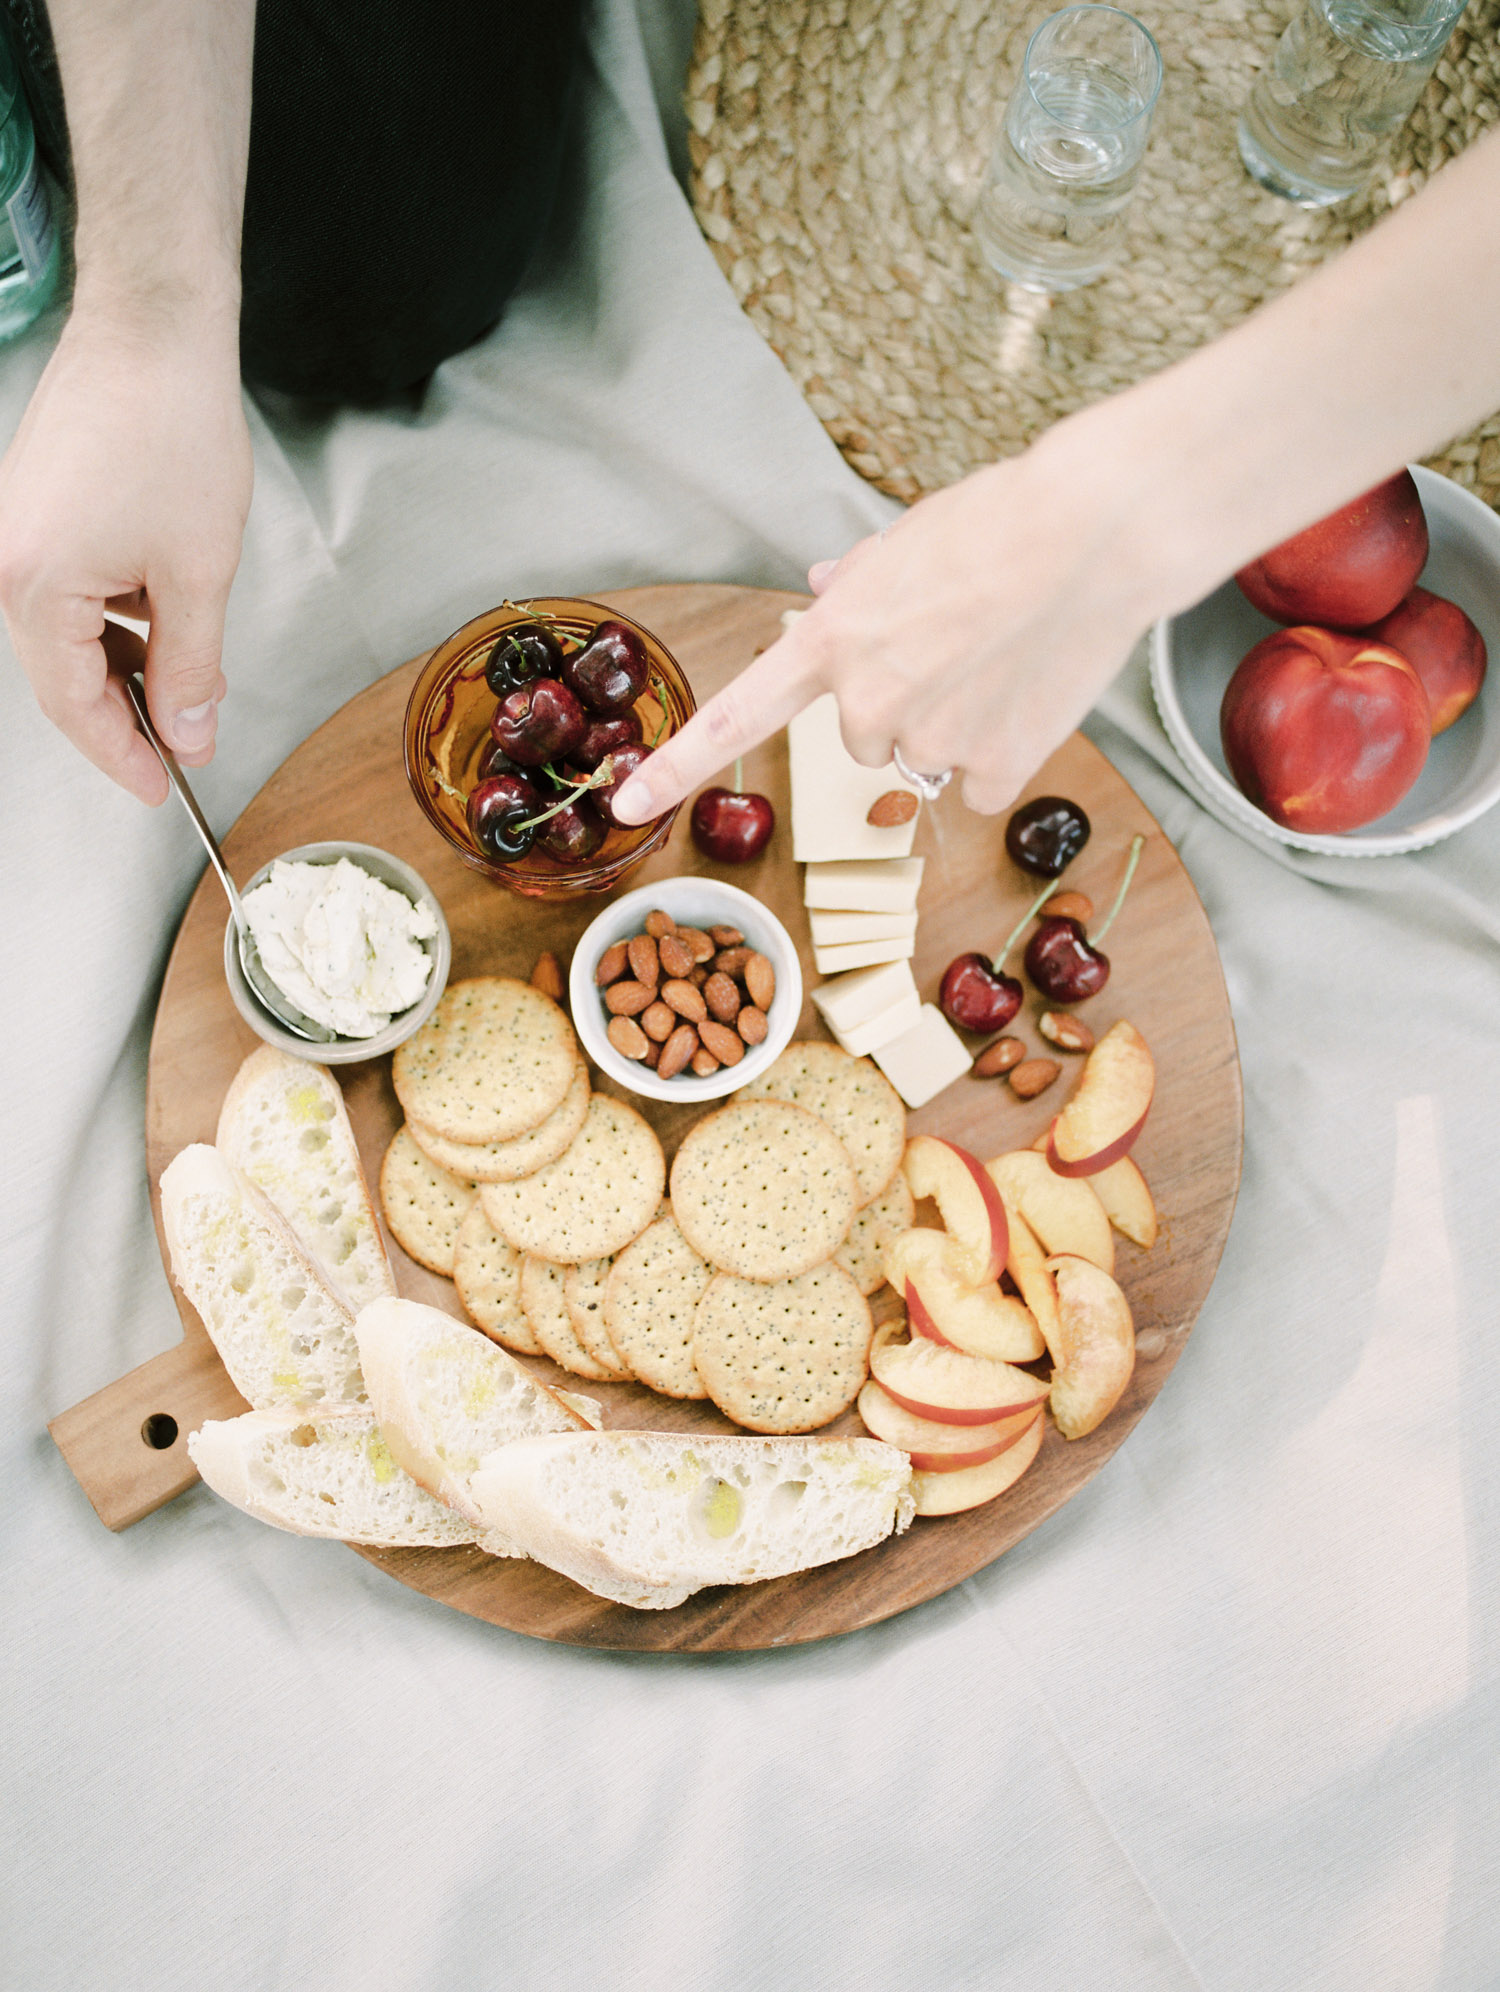 A bird's-eye view of a vegan charcuterie spread shows a woman's hand pointing at a vegan cheese in Detroit, Michigan